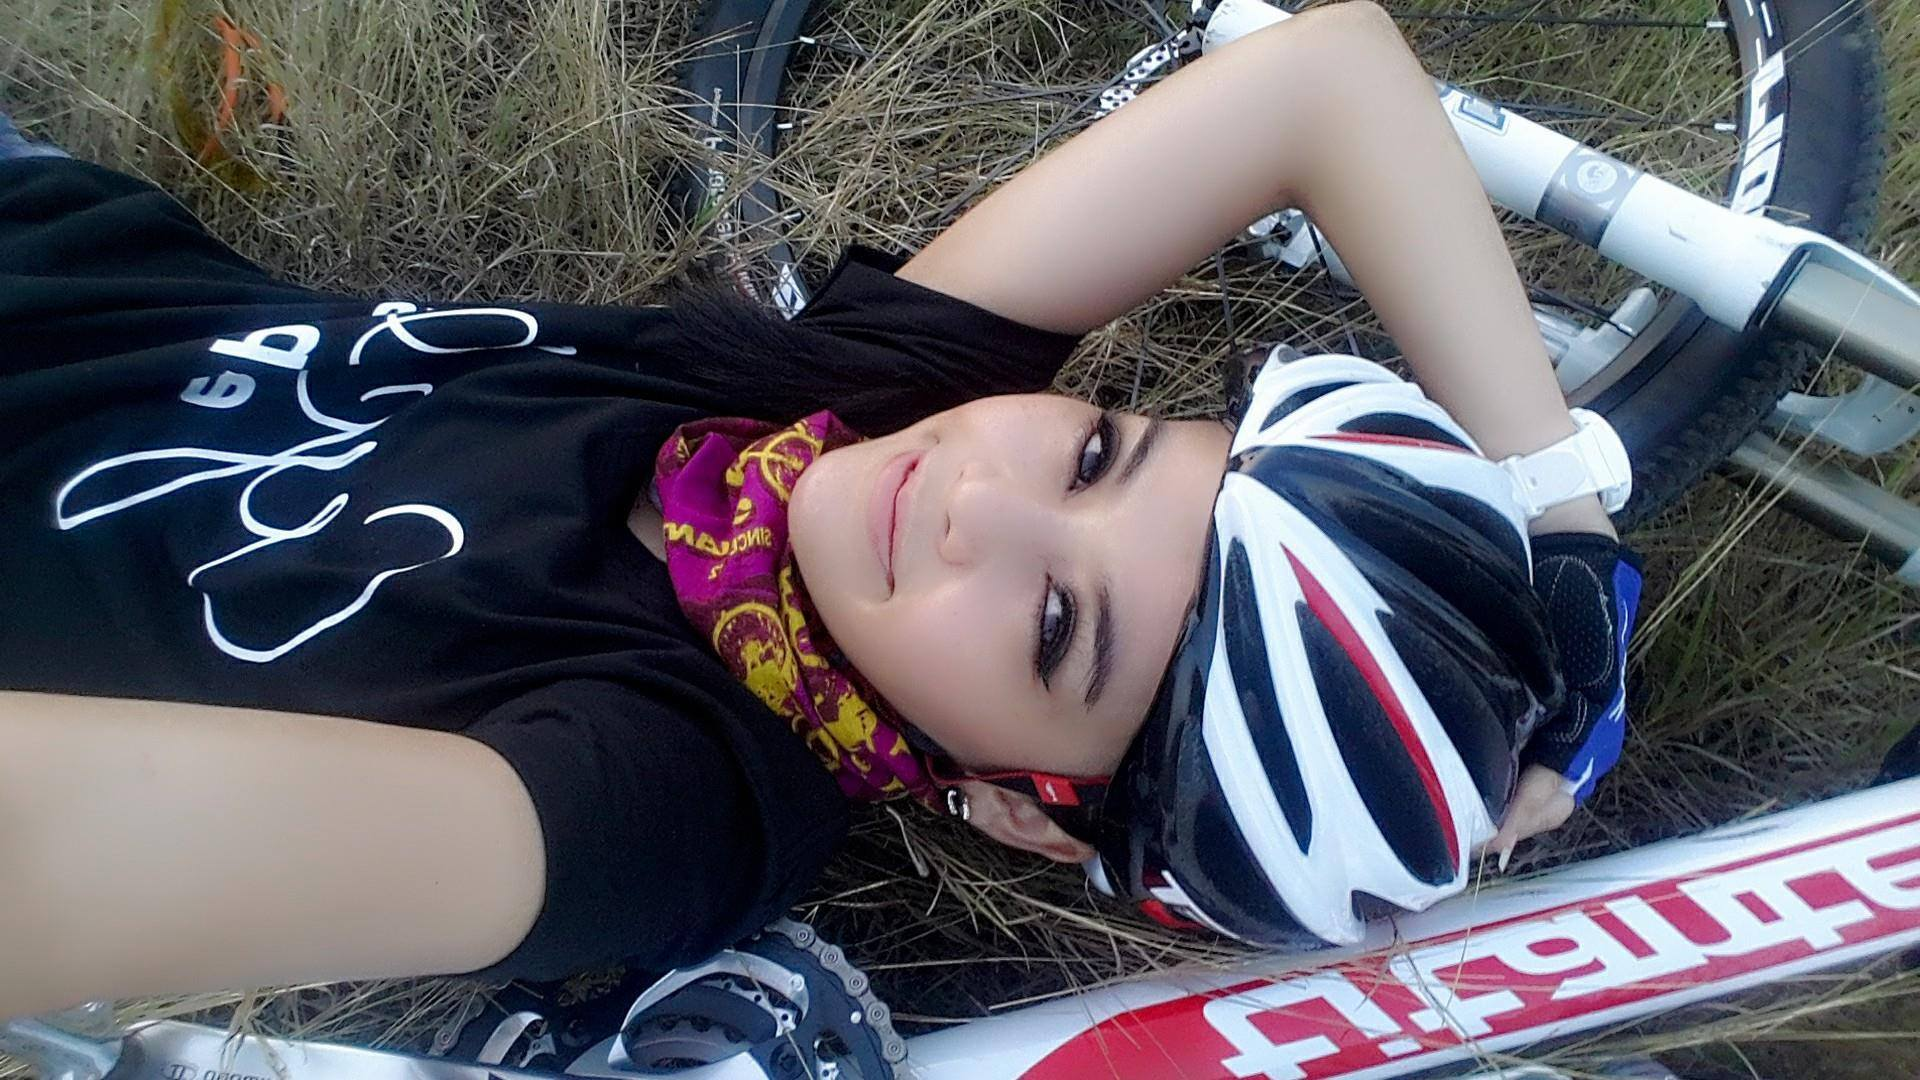 aorry_cooper_lee_selfie_bikegirls.jpg